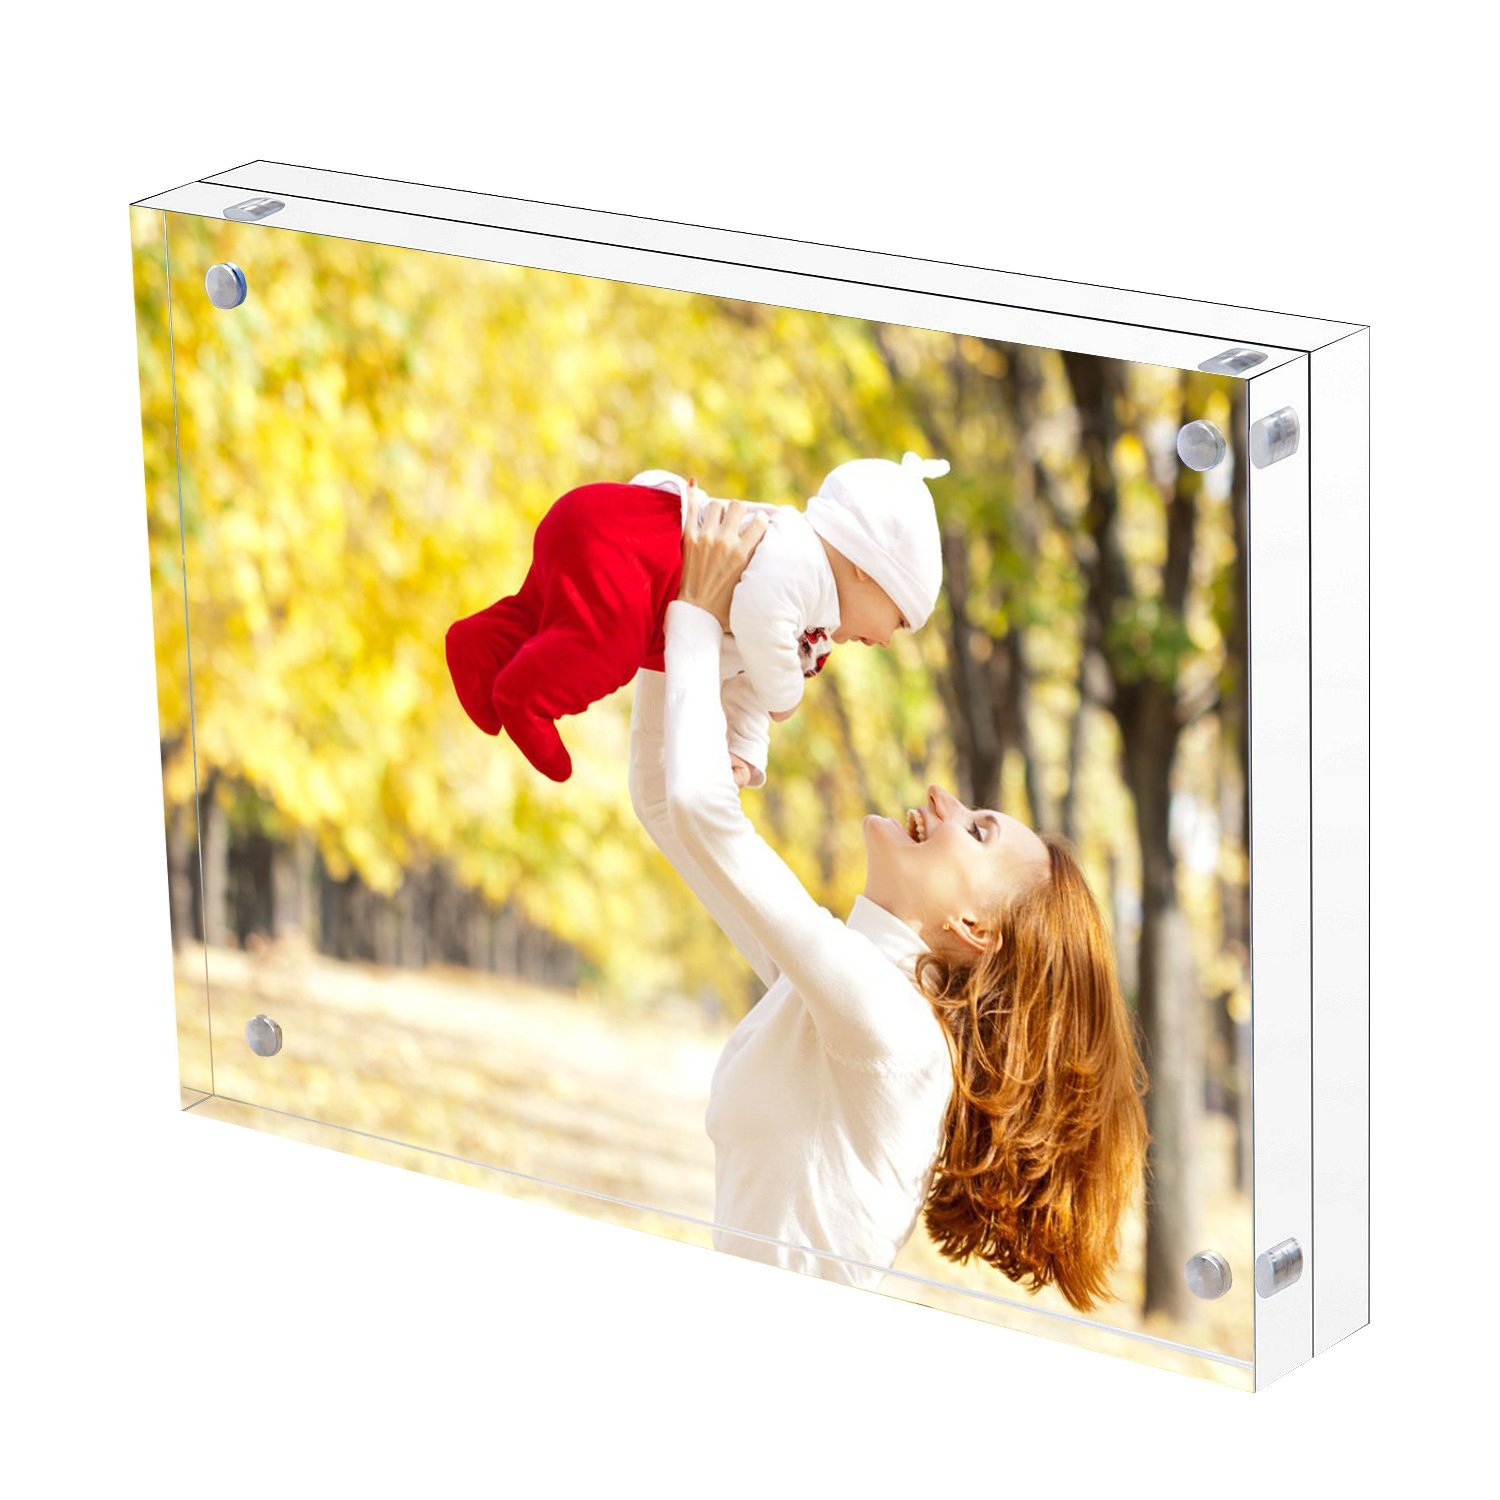 Double Sided Frameless Photo Display 4x10 Business License Frame Clear Acrylic Panoramic Photograph Picture Frame with Gift Box Package 4/×10 inch